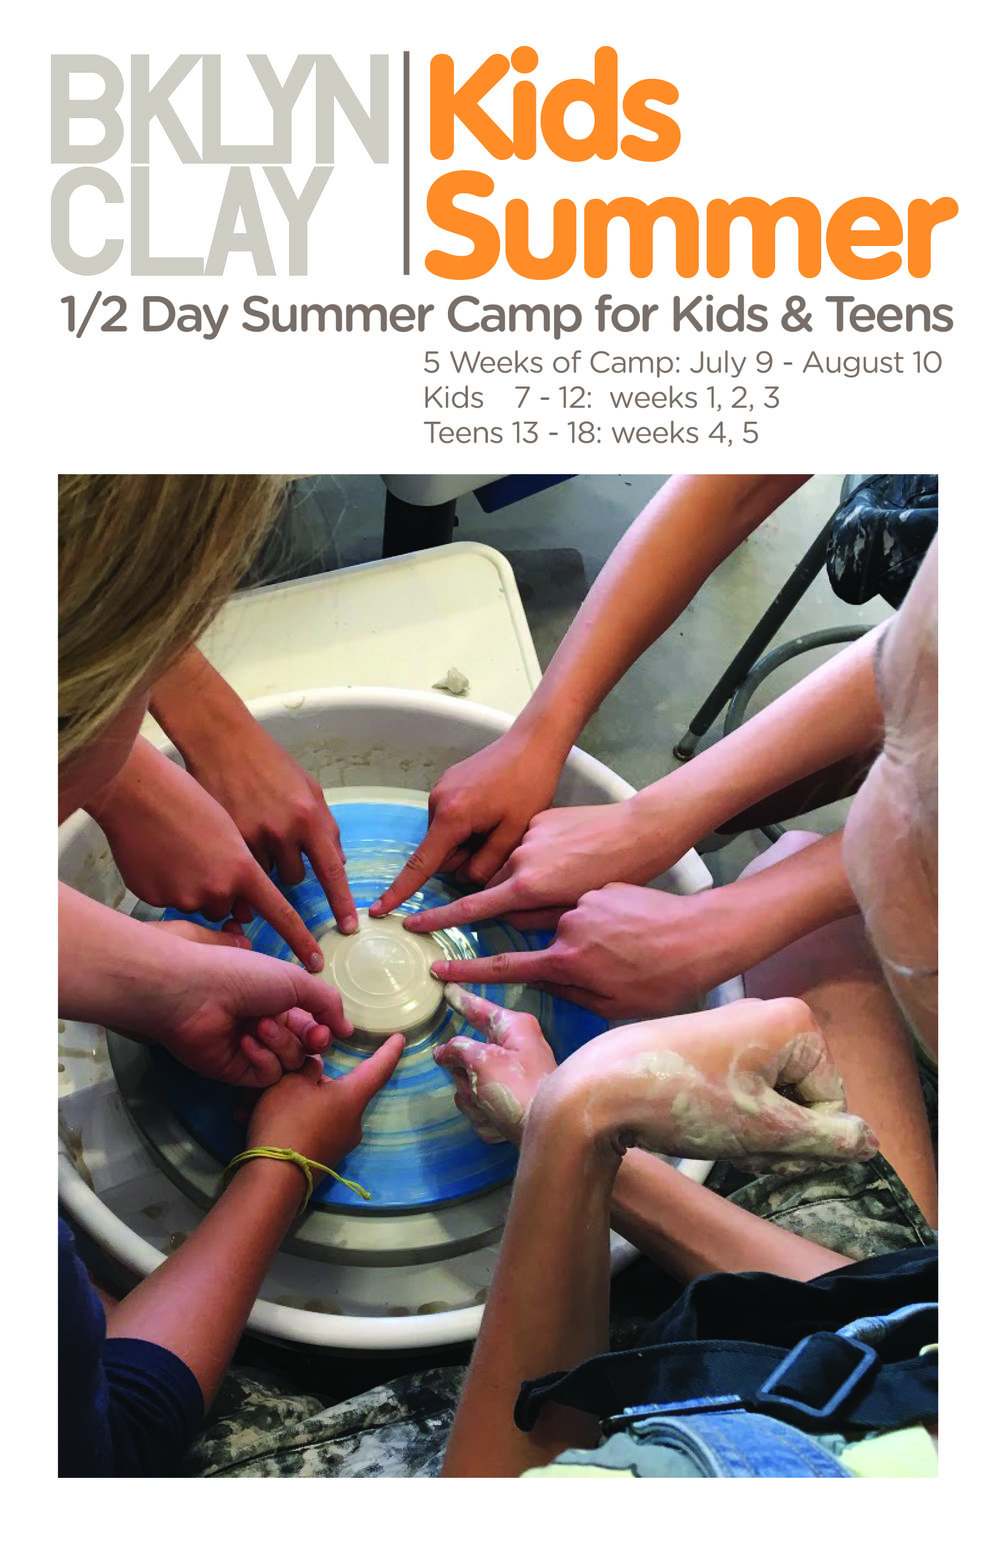 Kids Camp Handout 2018 site.jpg